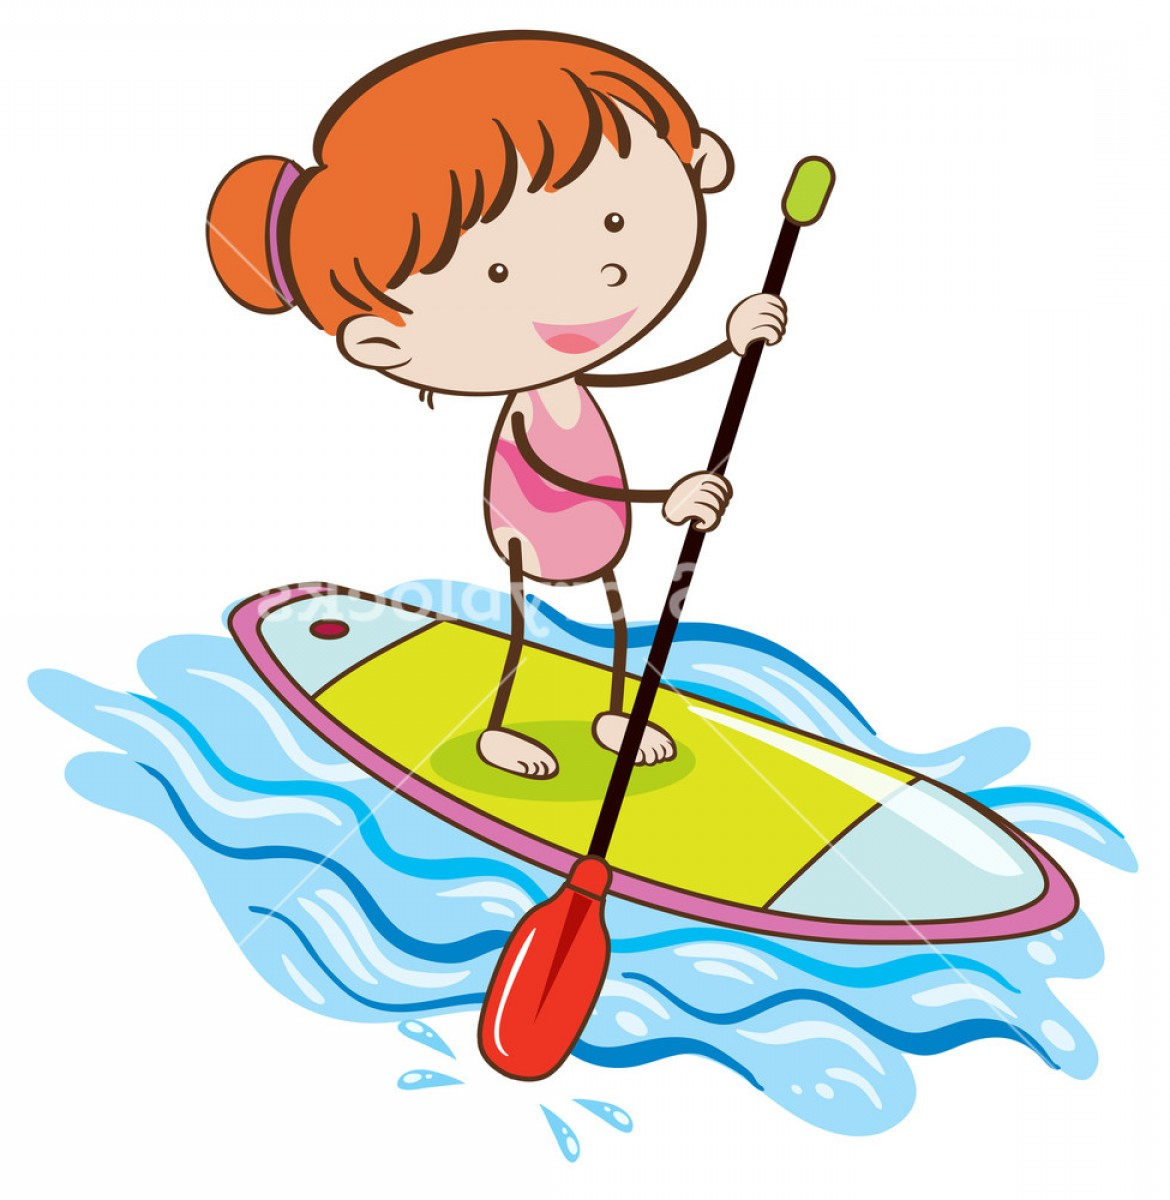 Paddleboard Vector Icons: Girl With Stand Up Paddle Board Bulxtmtzjglcx